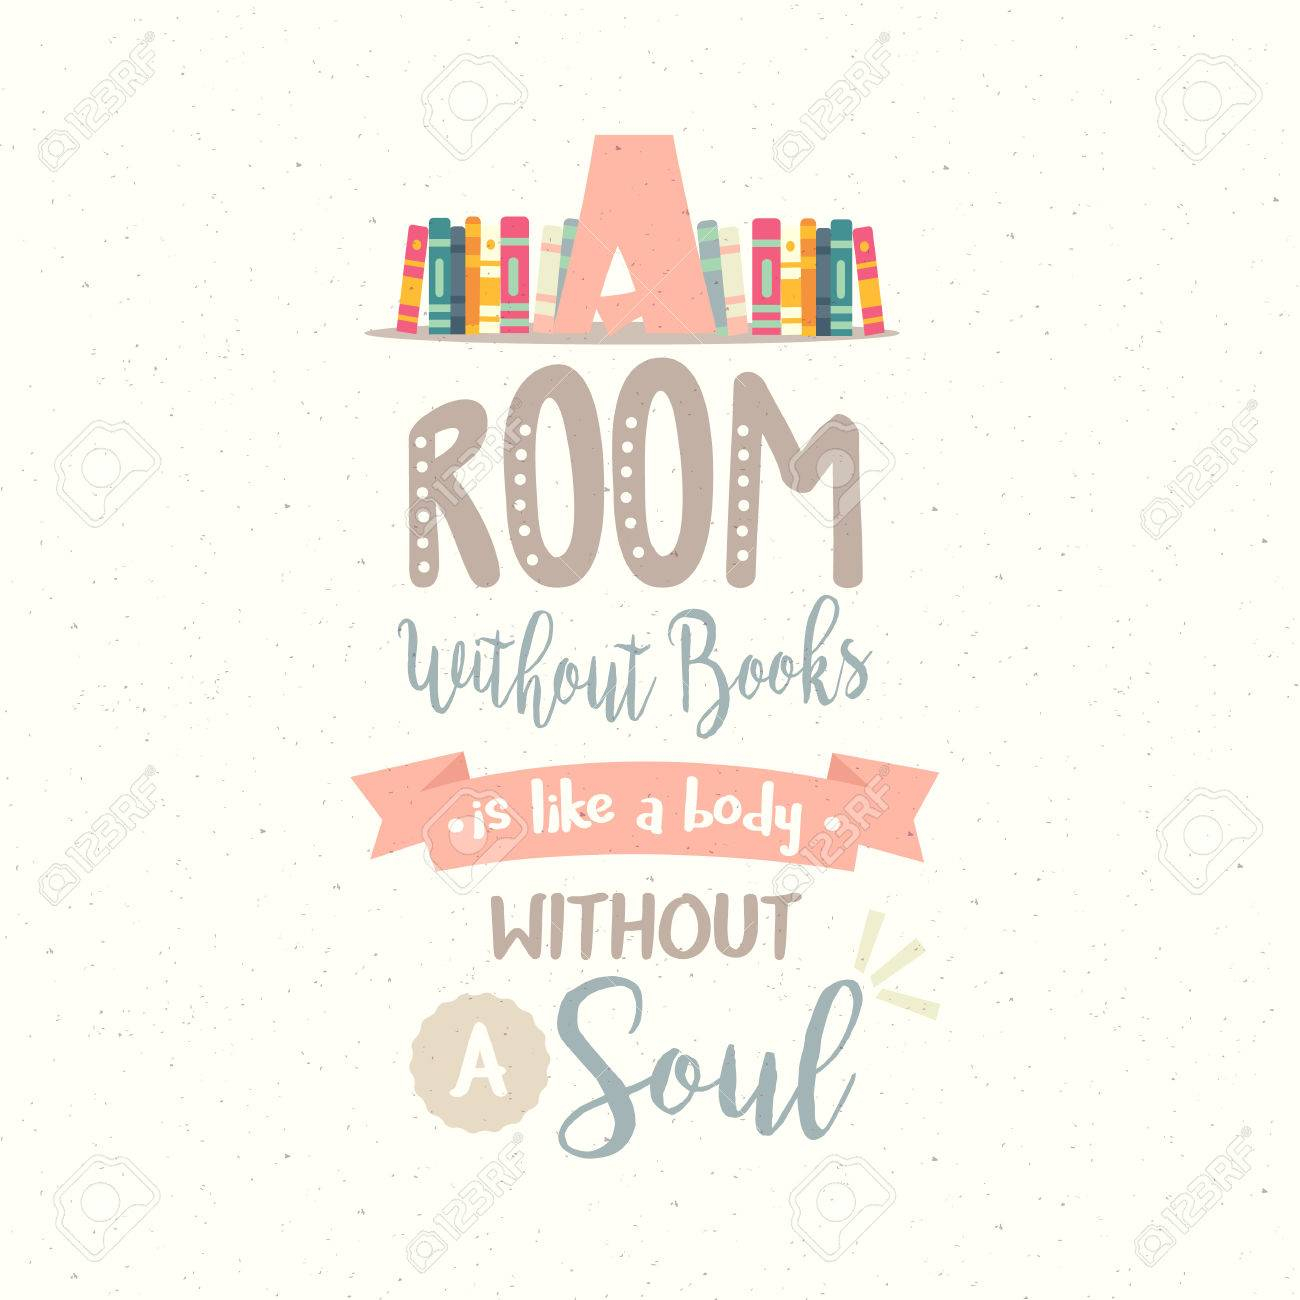 1300x1300 Reading Motivation Quotes A Room Without Book Body Without Soul